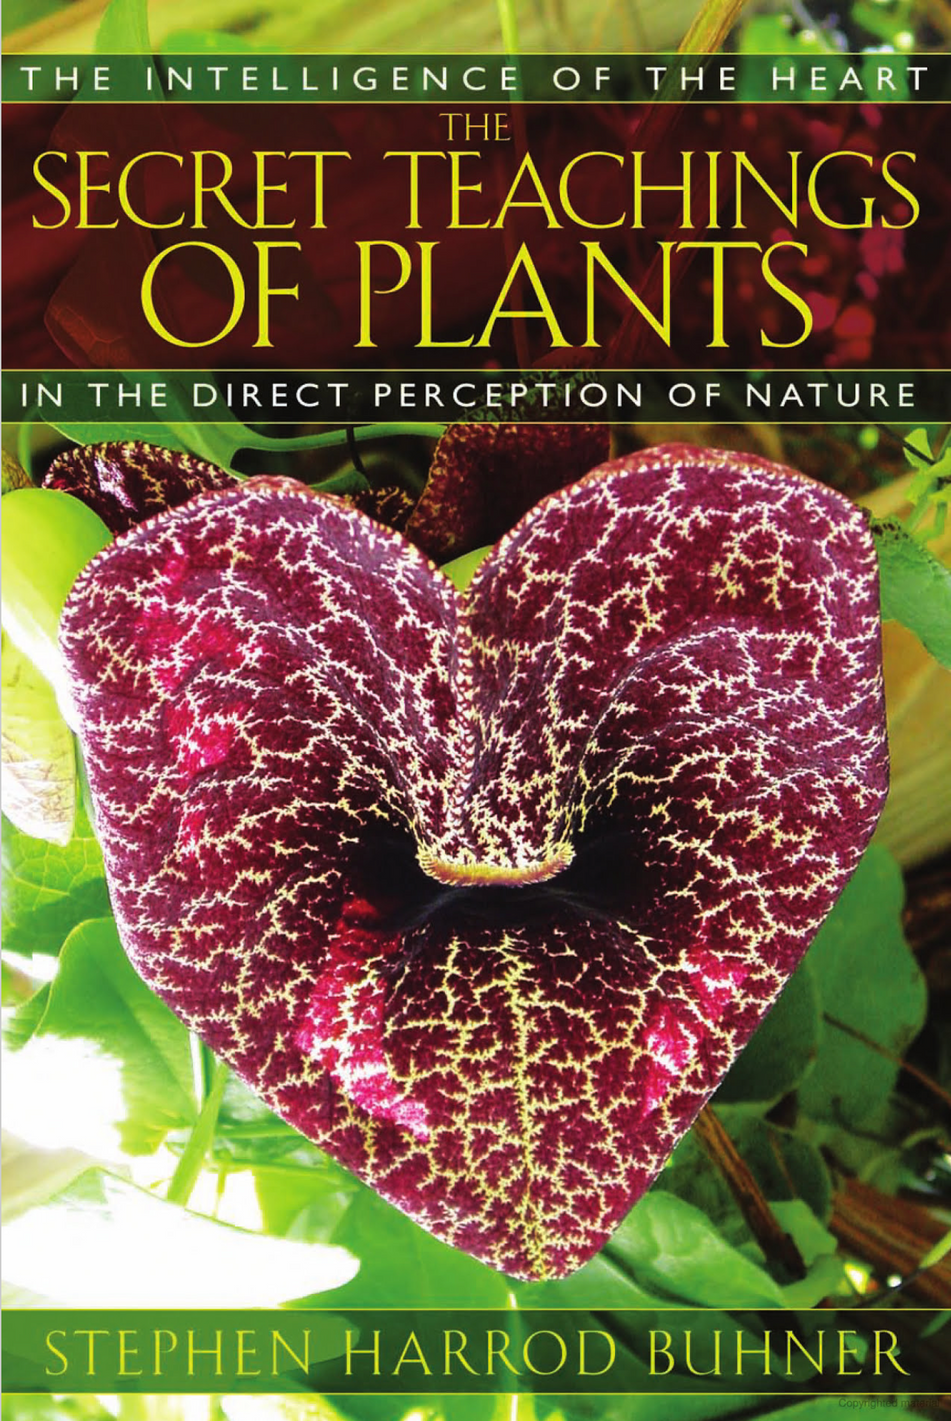 Recommended Reading - The Secret Teaching of Plants